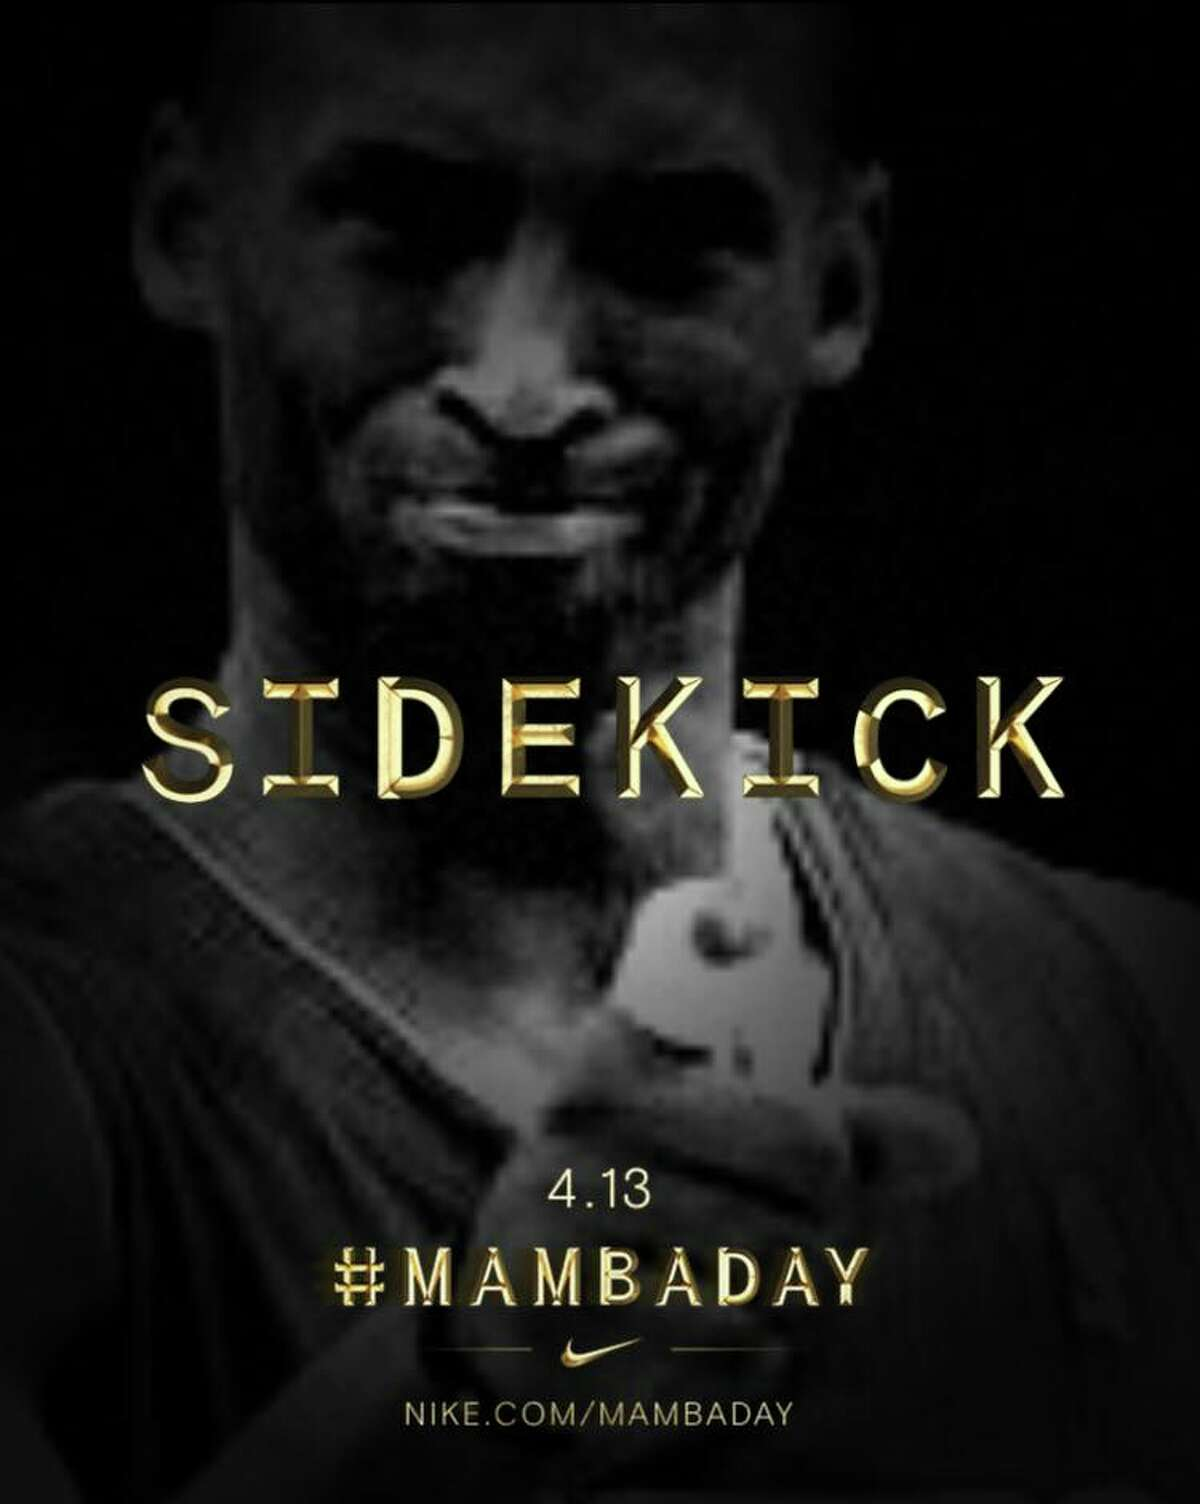 Kobe Bryant hater memes made at Nike.com/MambaDay.